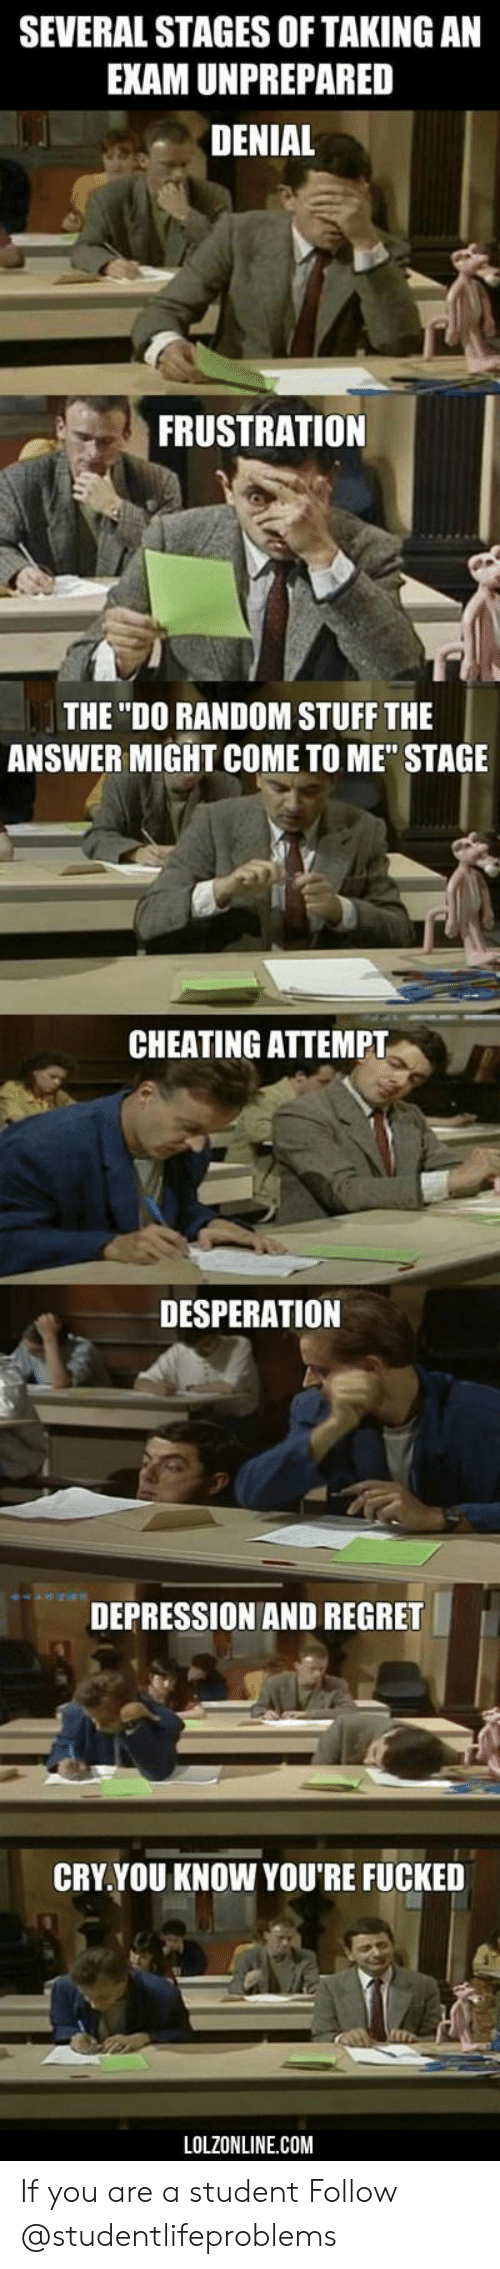 """Desperation: SEVERAL STAGES OF TAKING AN  EXAM UNPREPARED  DENIAL  FRUSTRATION  THE """"DO RANDOM STUFF THE  ANSWER MIGHT COME TO ME"""" STAGE  CHEATING ATTEMPT  DESPERATION  DEPRESSION AND REGRET  CRY.YOU KNOW YOU'RE FUCKED  LOLZONLINE.COM If you are a student Follow @studentlifeproblems"""